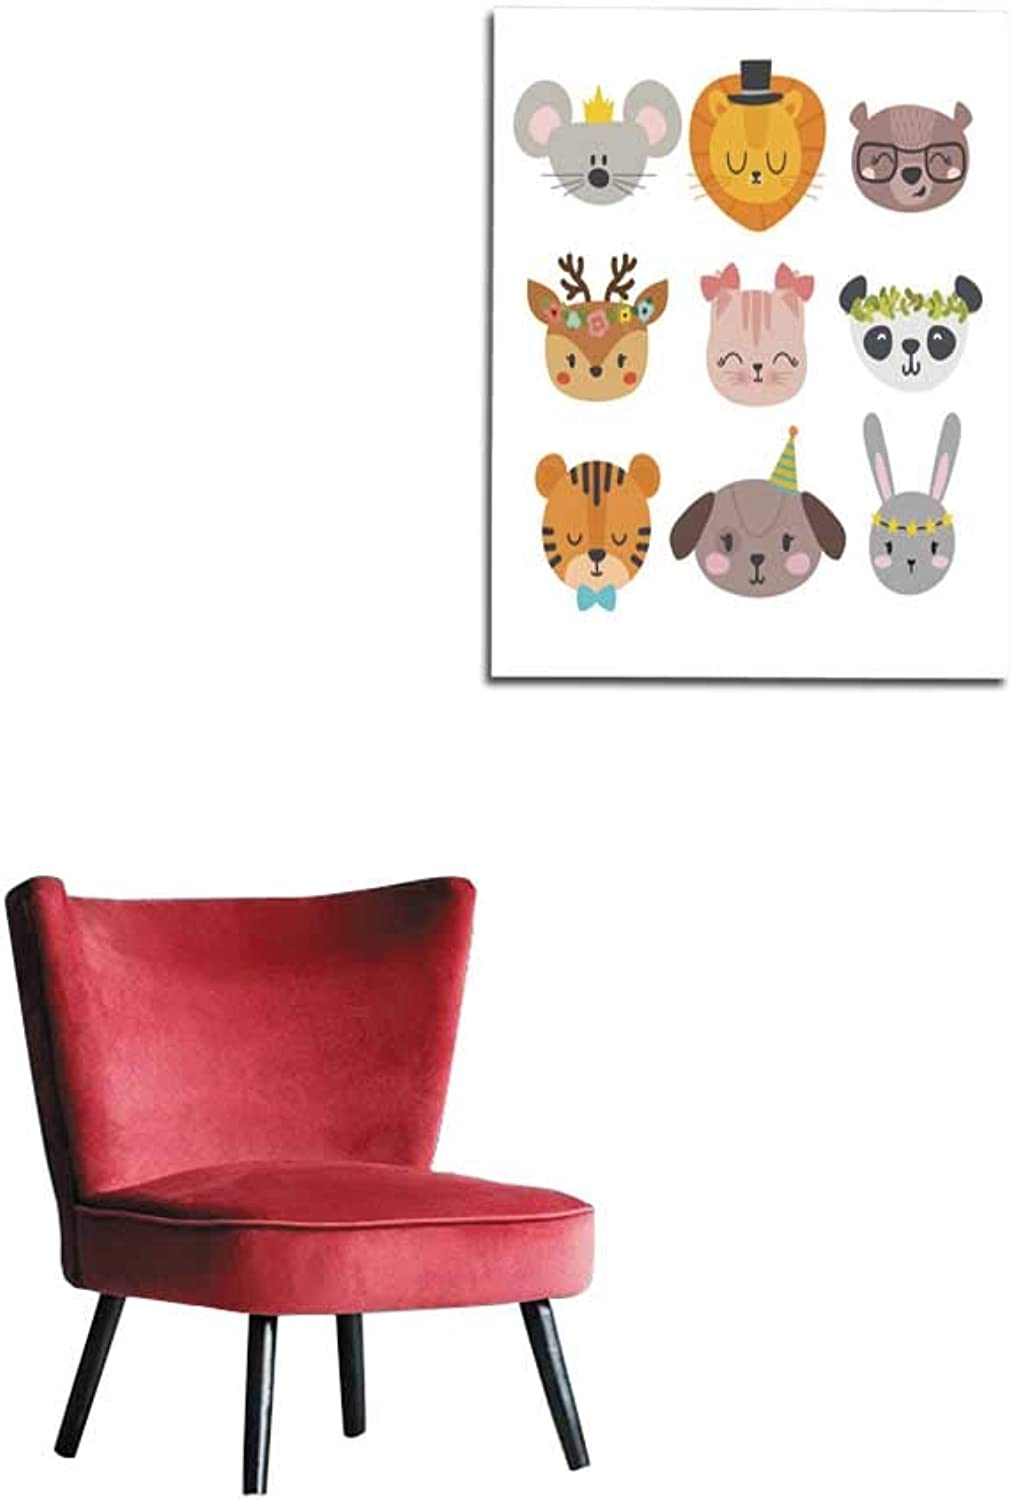 Longbuyer Home Decor Wall Cute Animals with Funny Accessories Cartoon Zoo Set of Hand Drawn Smiling Characters Cat Lion Panda Dog Tiger Deer Bunny Mouse and Bear Mural 32 x36